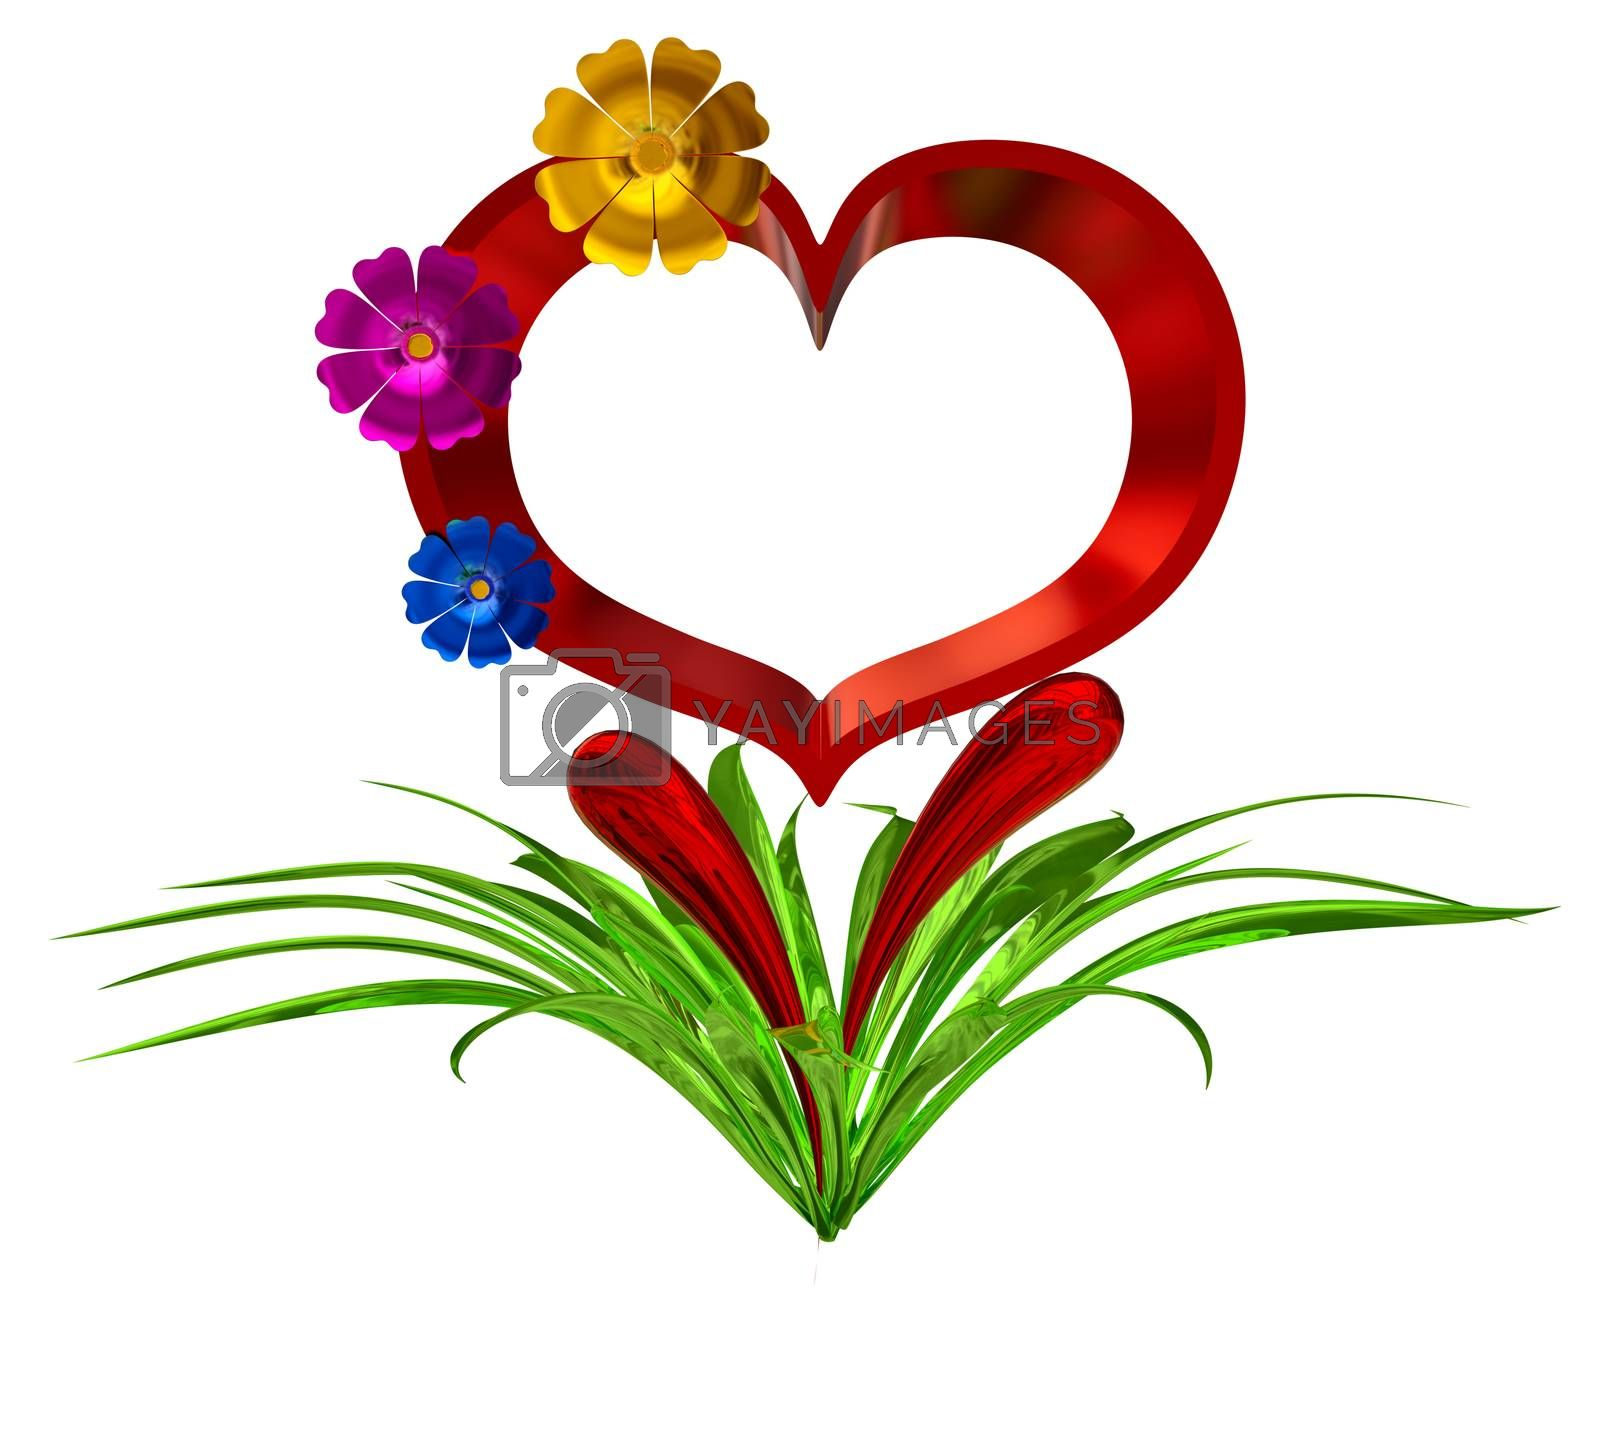 heart in leaves with flowers as a symbol of love